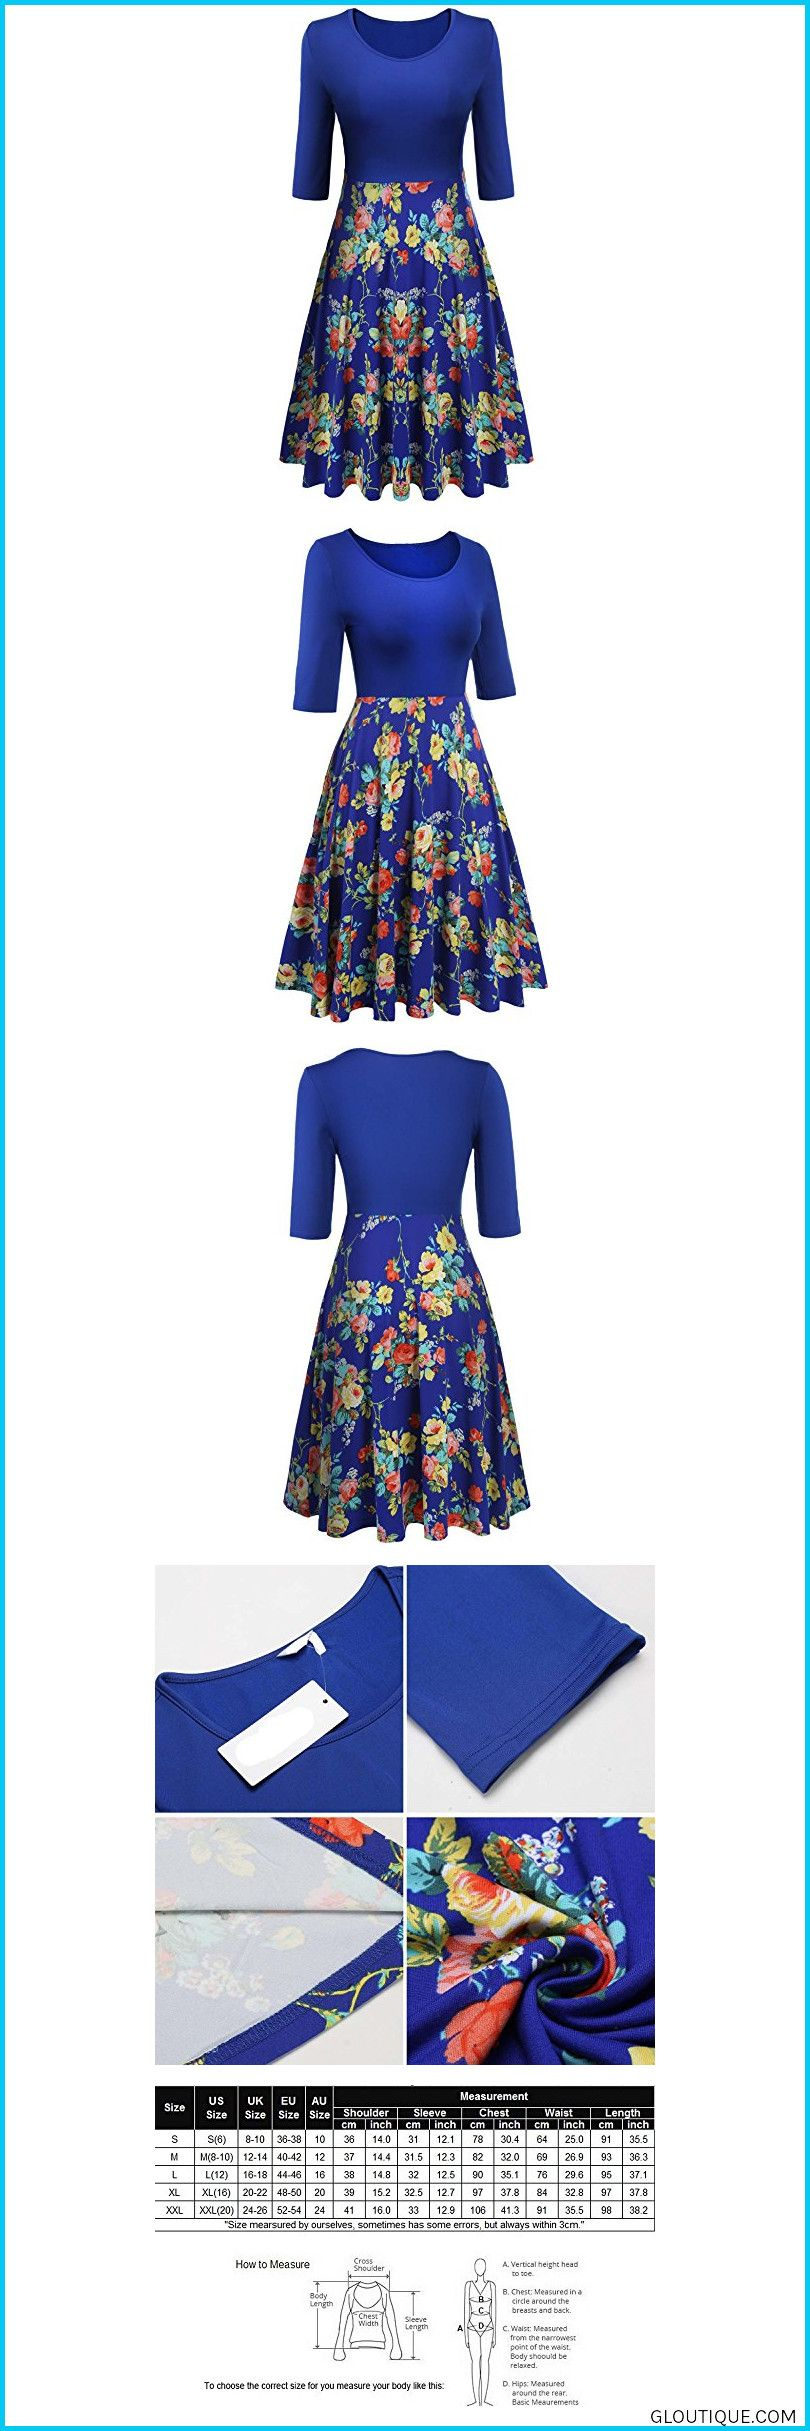 f9702fed0 Comfortable and Breathable With Good ELastic. Skin-friendly. ELegant Fit  and Flare Dress feat#fashionELESOL Women's Floral Knee Length Cocktail  Party Dress?